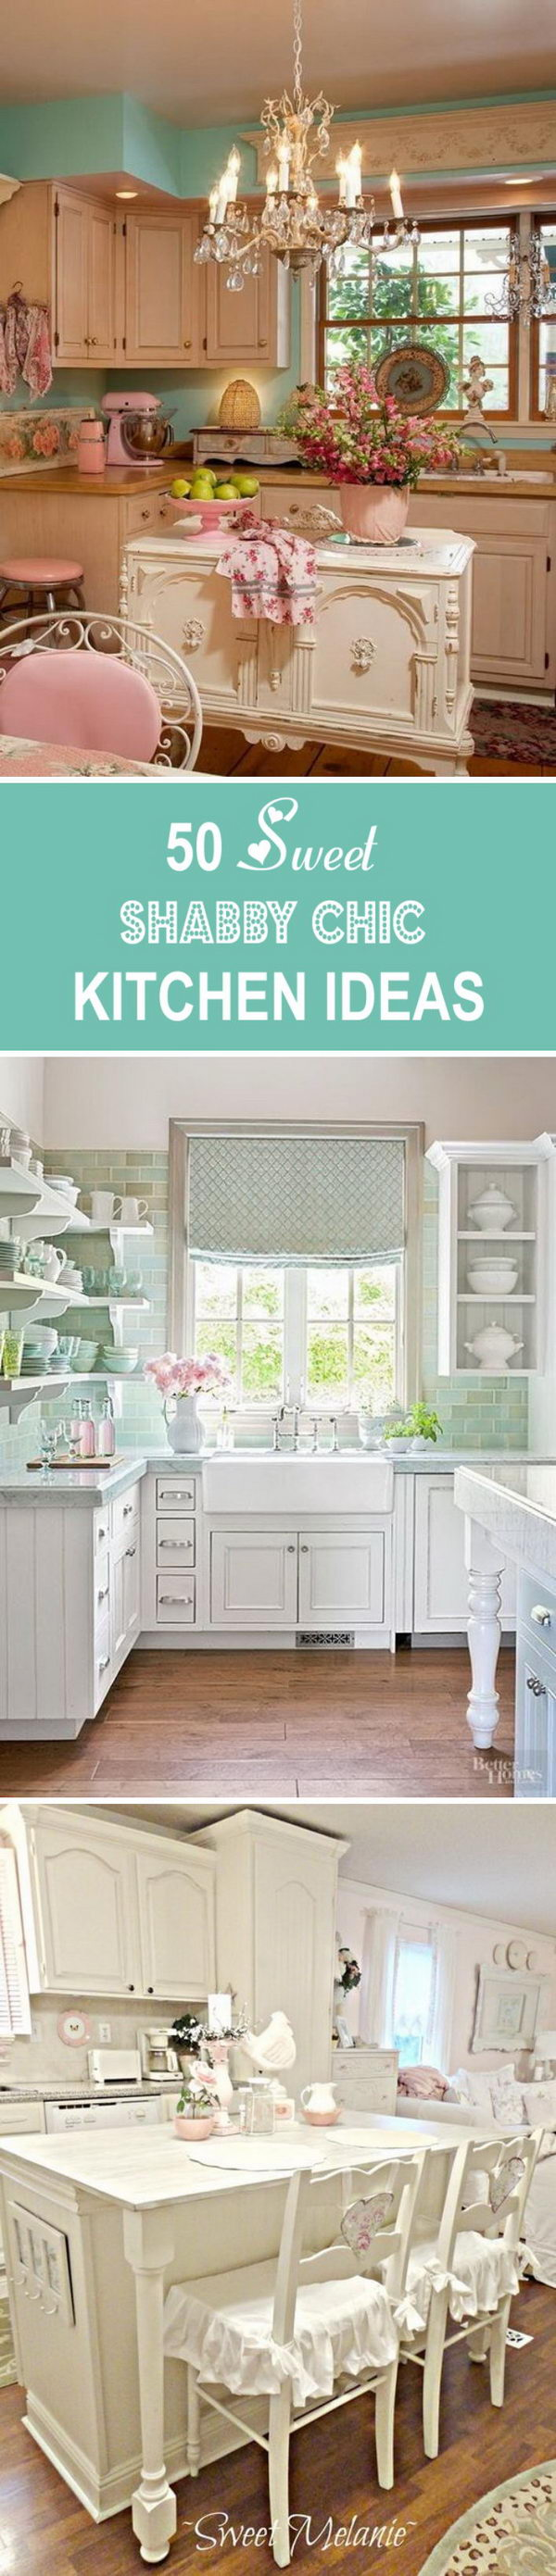 50 Sweet Shabby Chic Kitchen Ideas.